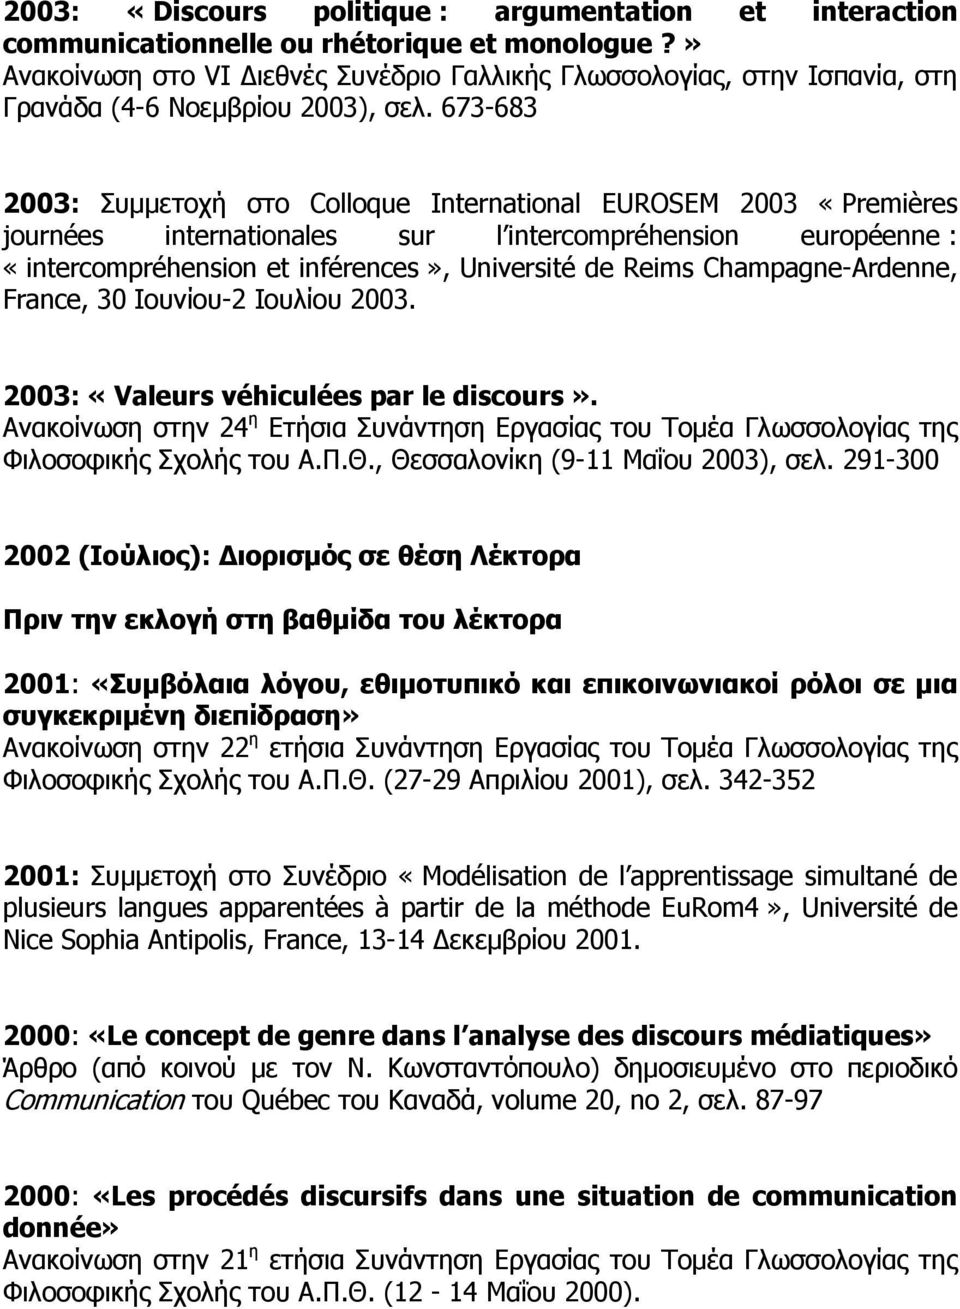 673-683 2003: Συμμετοχή στο Colloque International EUROSEM 2003 «Premières journées internationales sur l intercompréhension européenne : «intercompréhension et inférences», Université de Reims